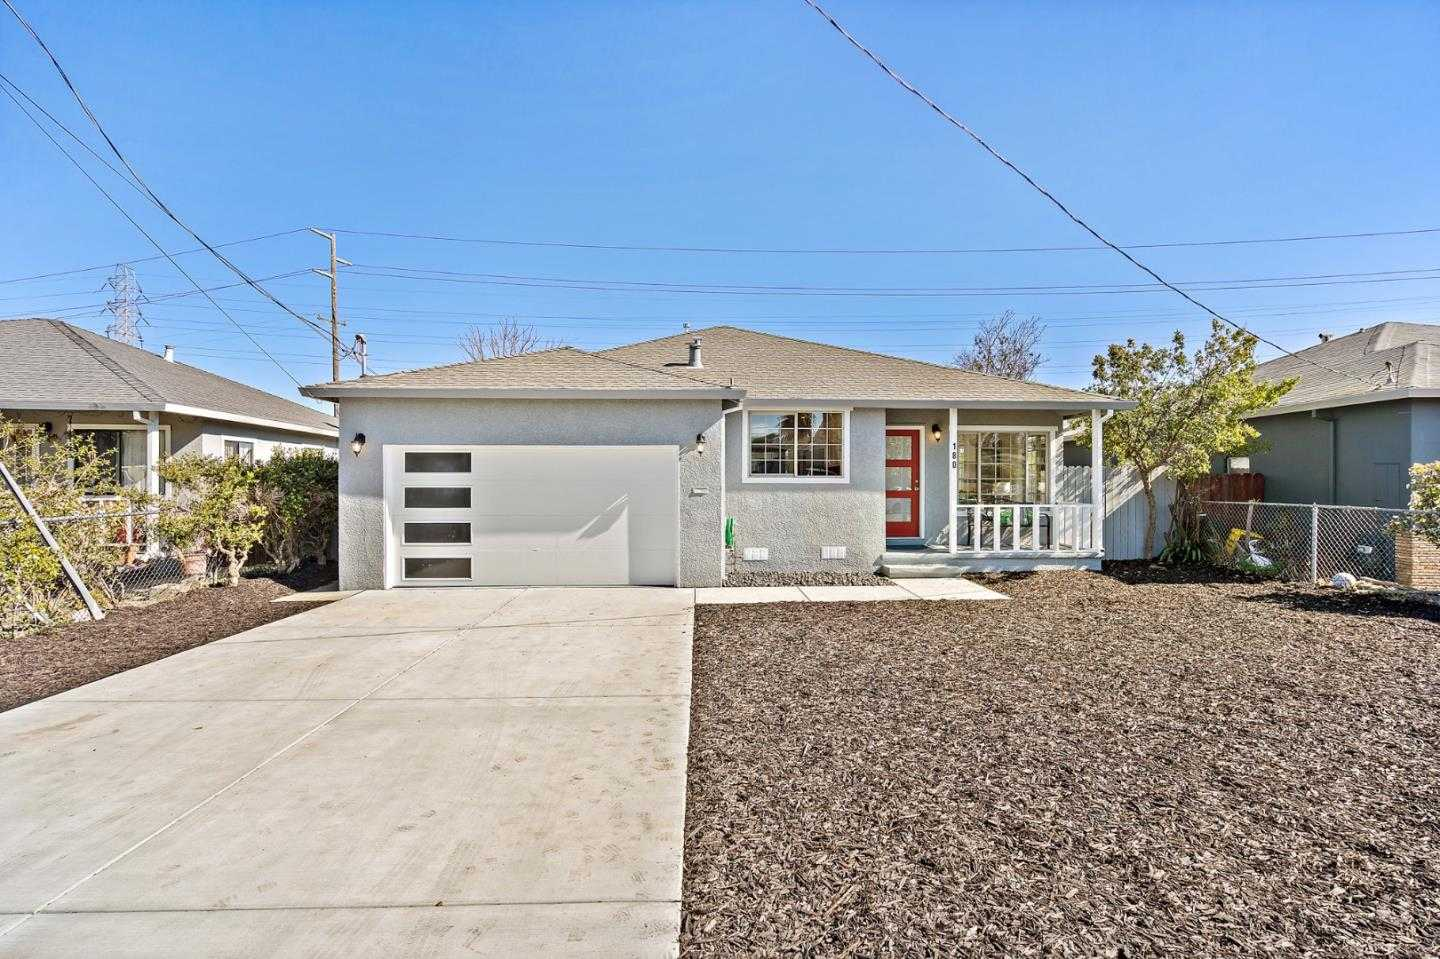 $1,098,000 - 3Br/1Ba -  for Sale in East Palo Alto